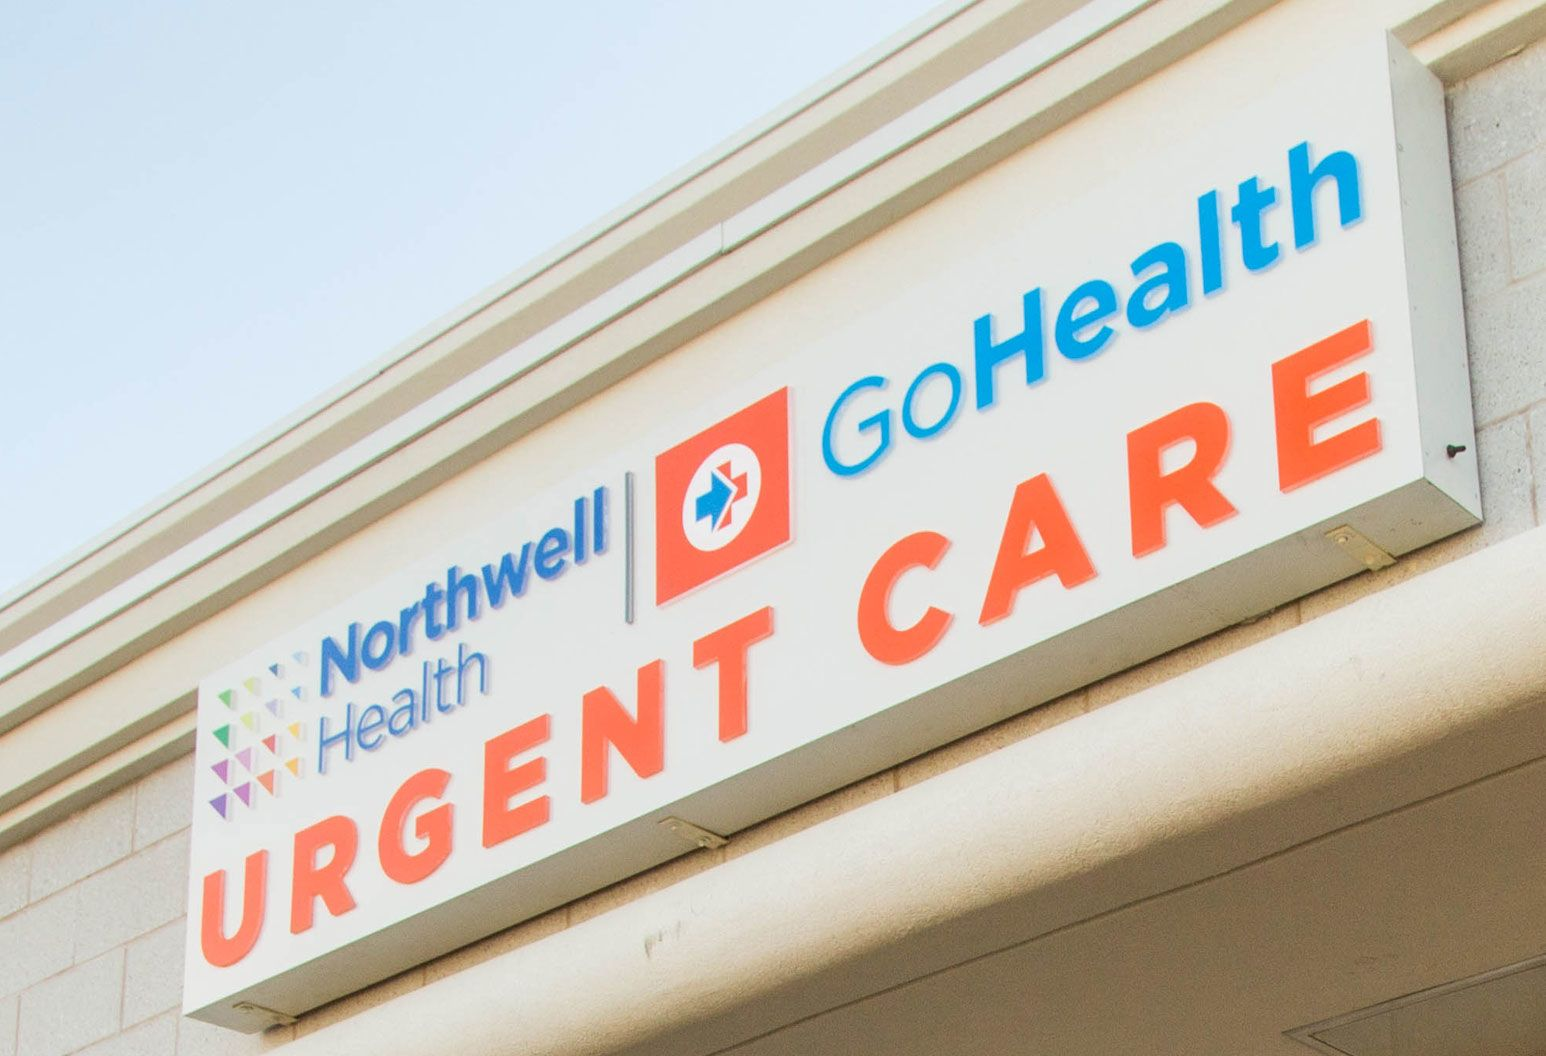 A beautiful exterior sign of Northwell Health Go Health Urgent care